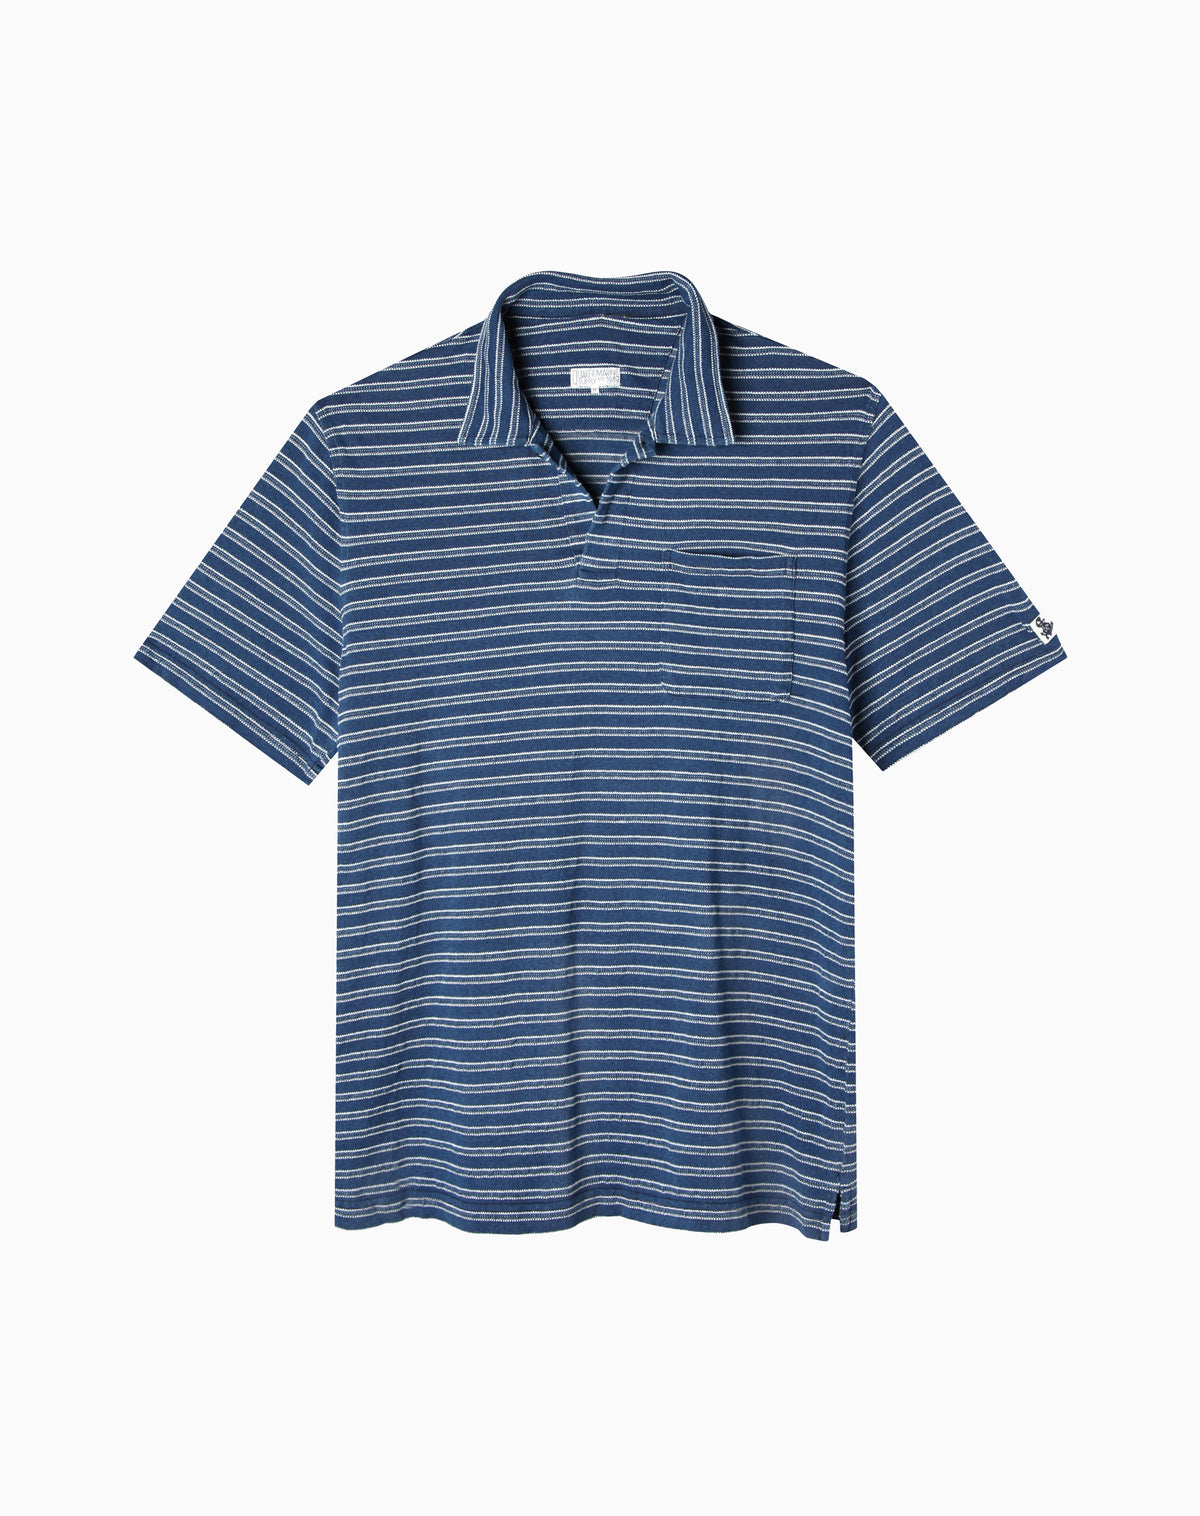 Indigo Polo in Mid Wash Jacquard Stripe